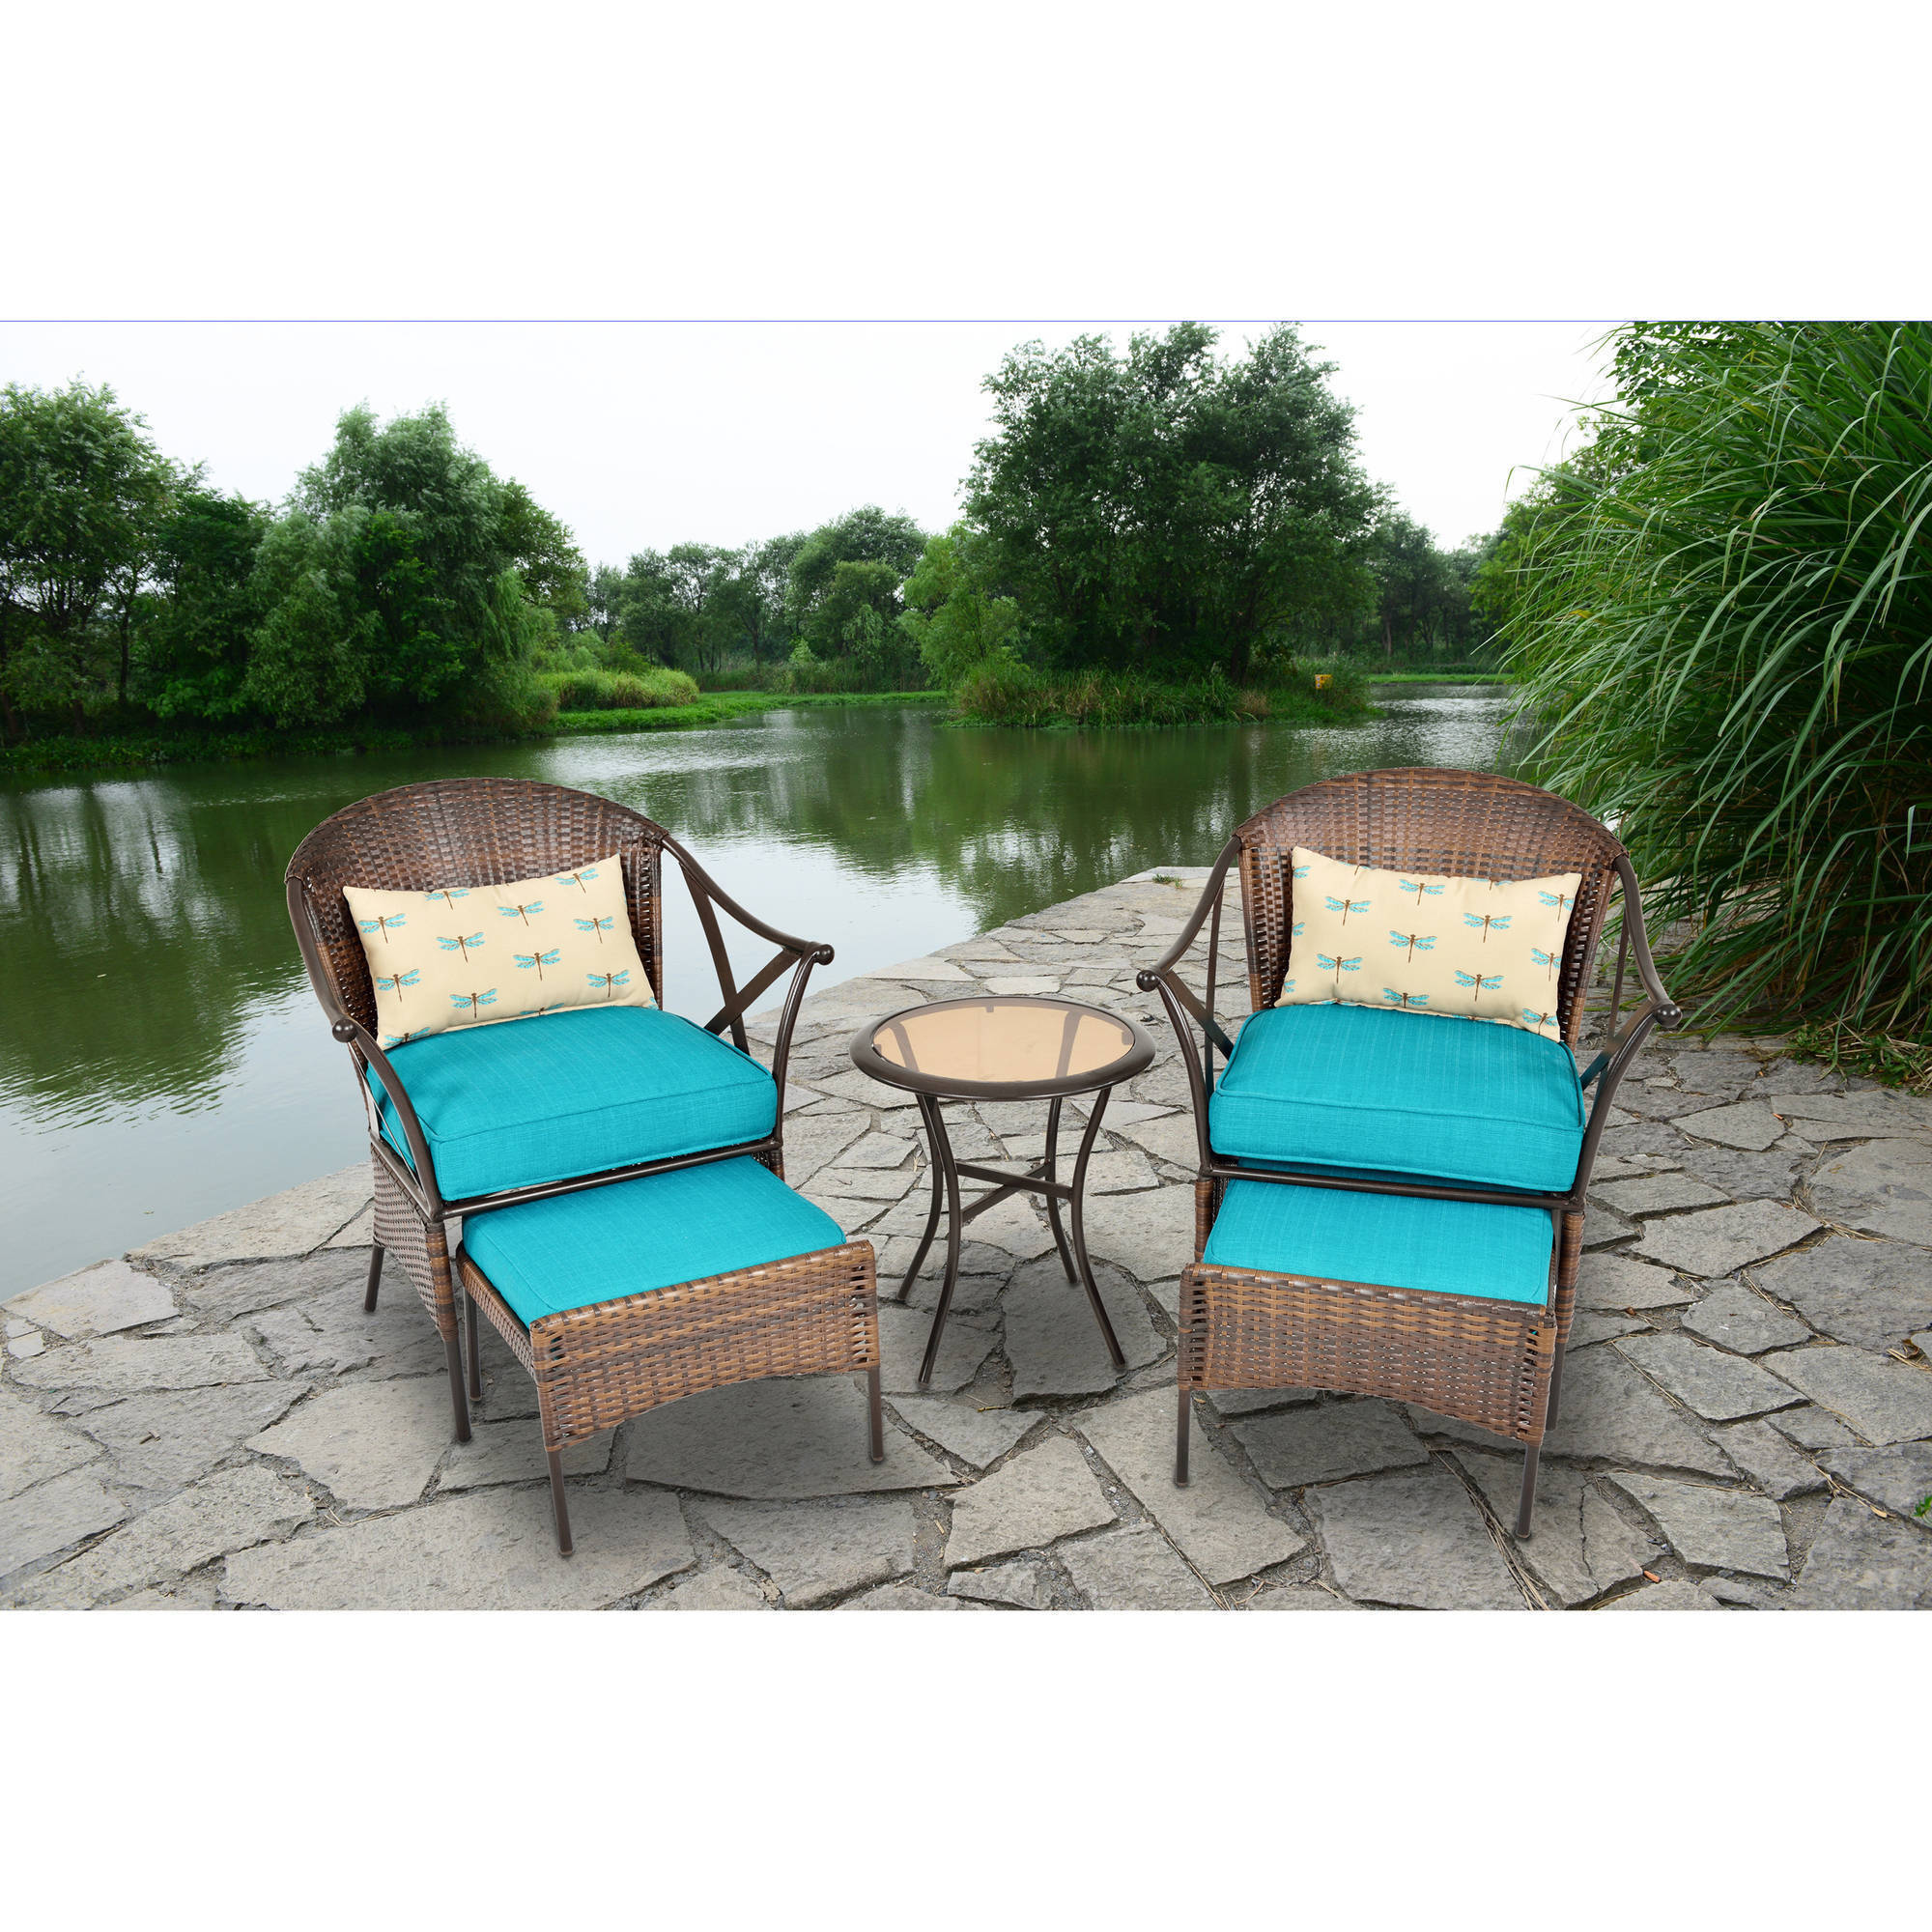 Mainstays 5-Piece Skylar Glen Outdoor Leisure Set, Blue, Seats 2